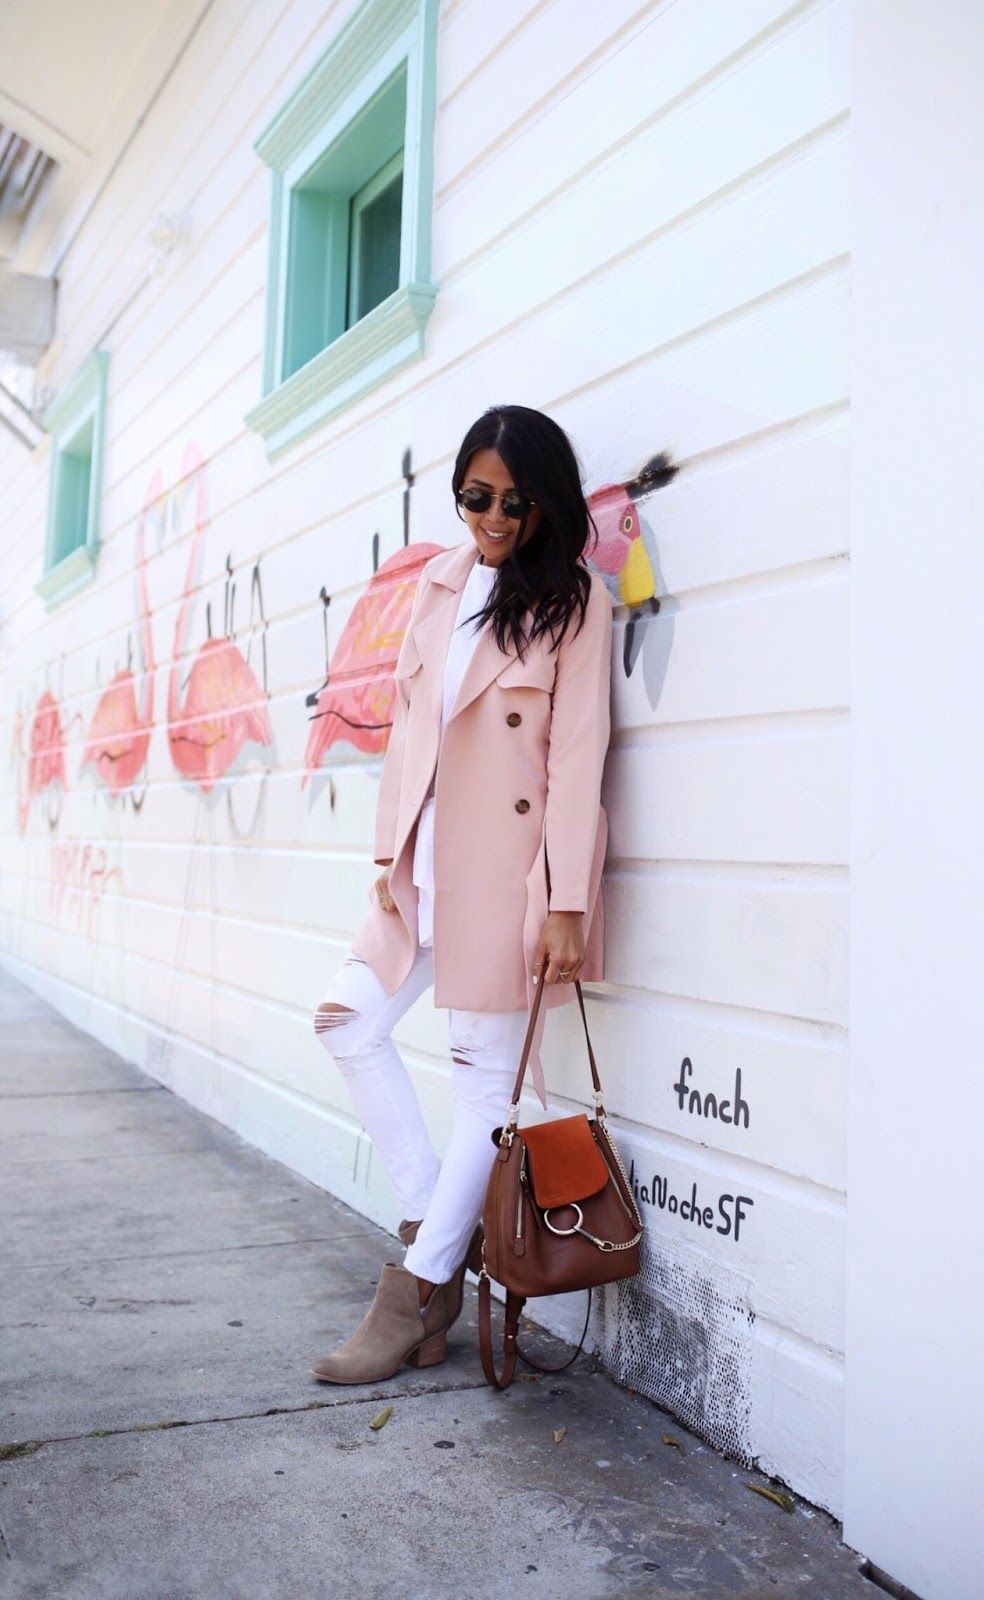 cdbfc7997 Abercrombie Fitch Pink Drapey Trench Coat Gypsy Tan Chloe Backpack Faye